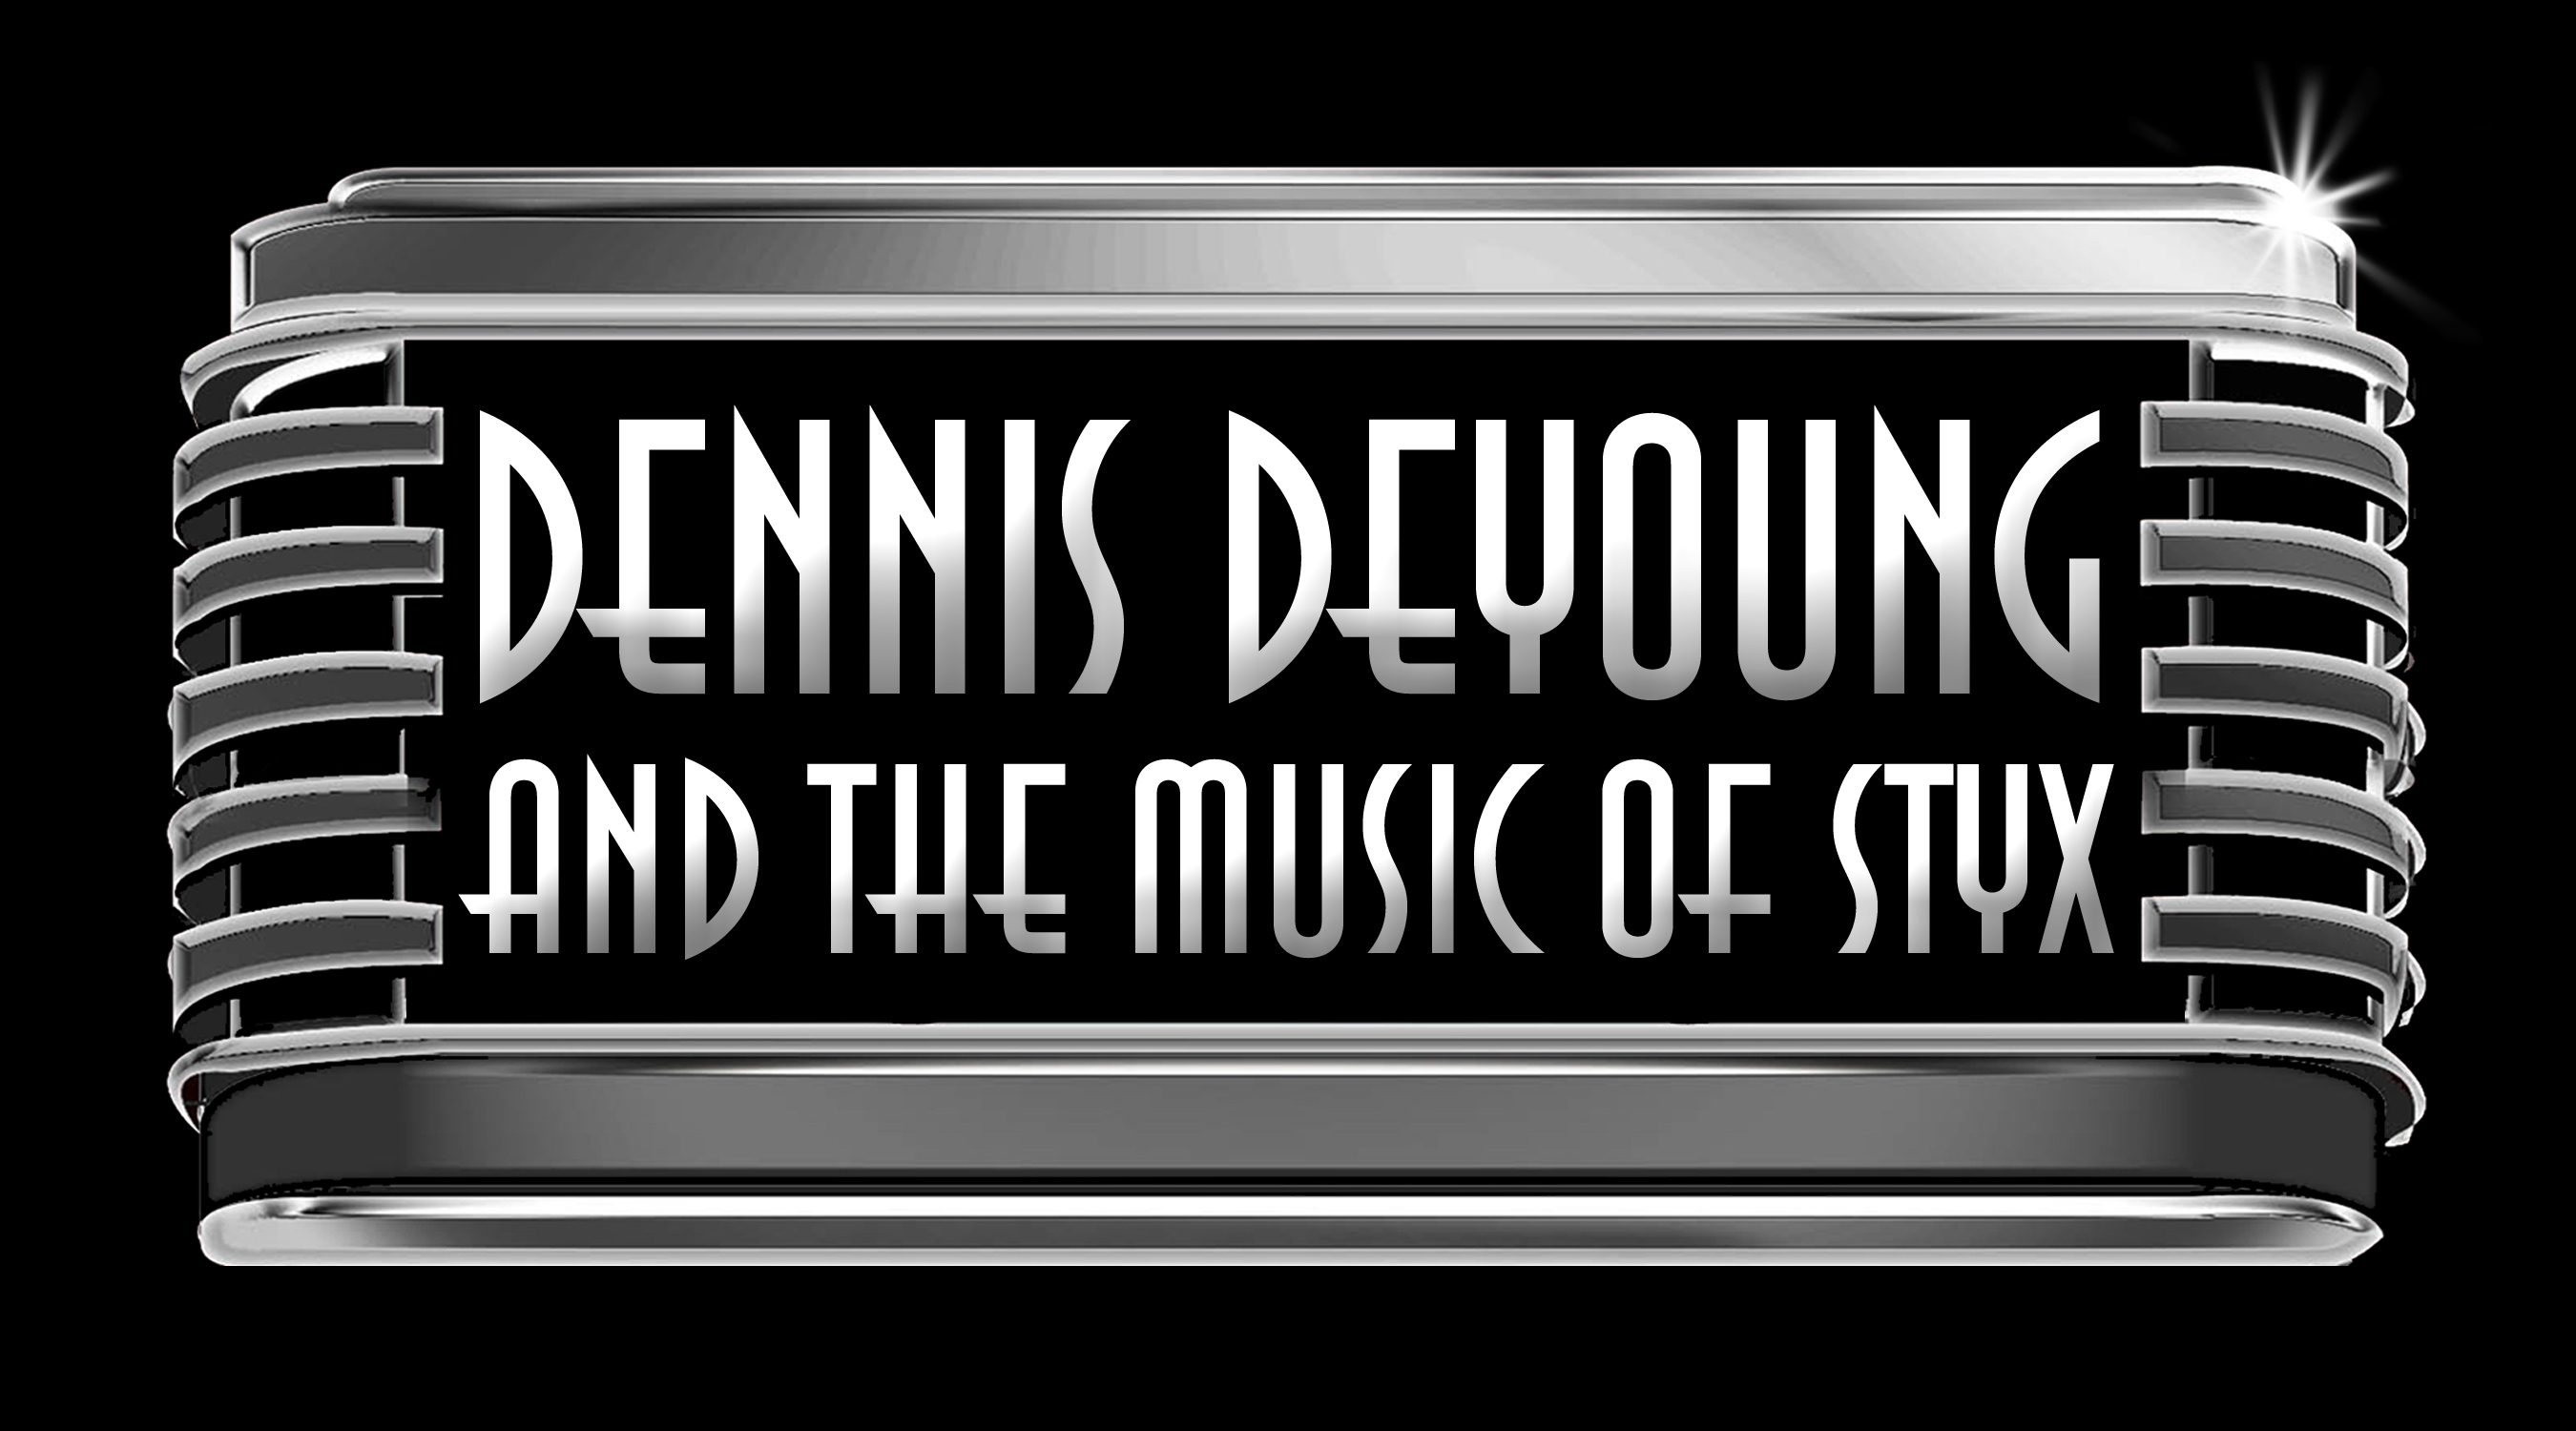 Dennis DeYoung Interview